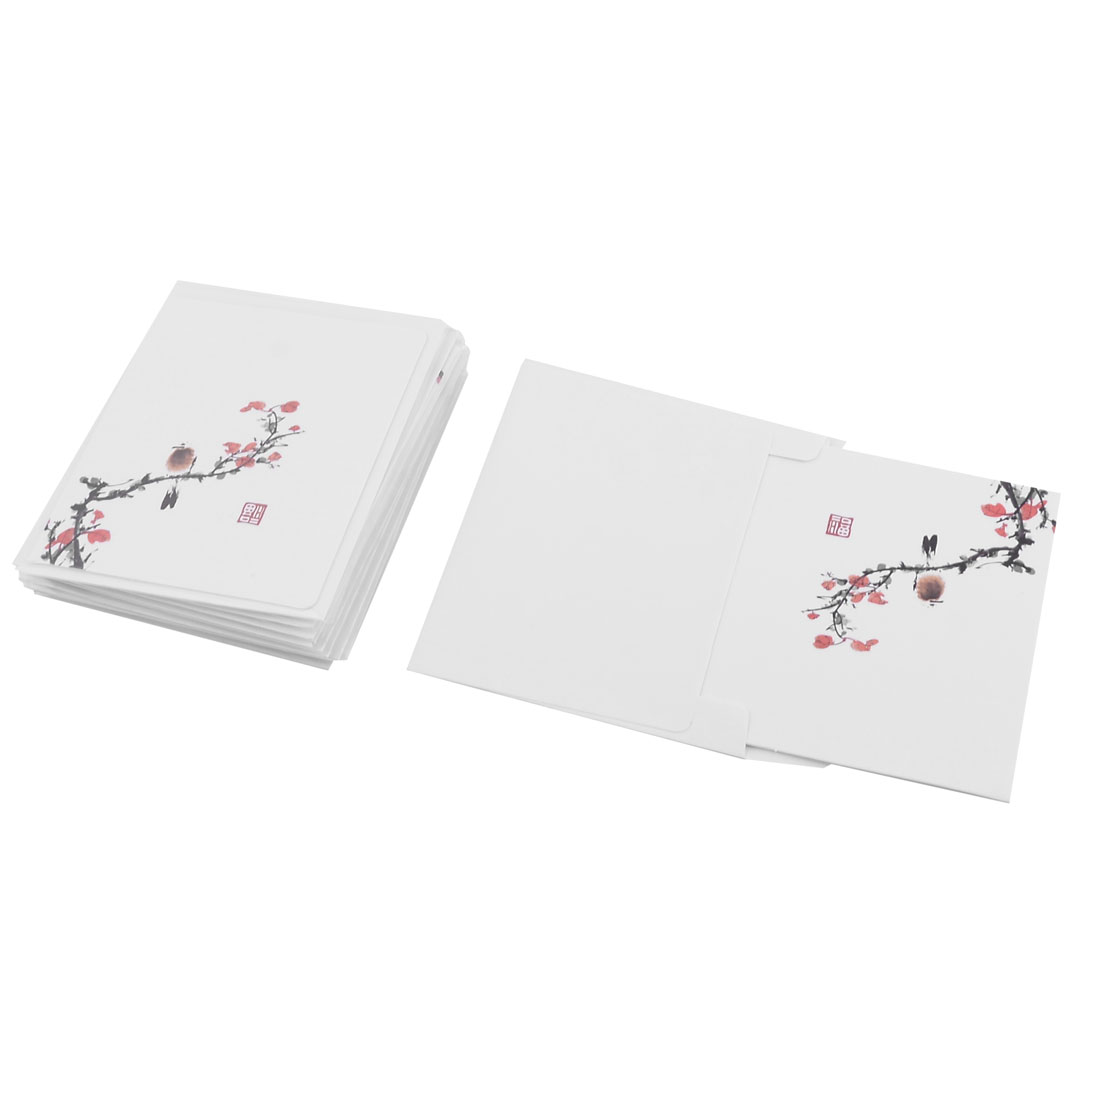 Festival Thanksgiving Day Paper Plum Blossom Pattern Handmade Invitation Greeting Card Craft 10 Sets